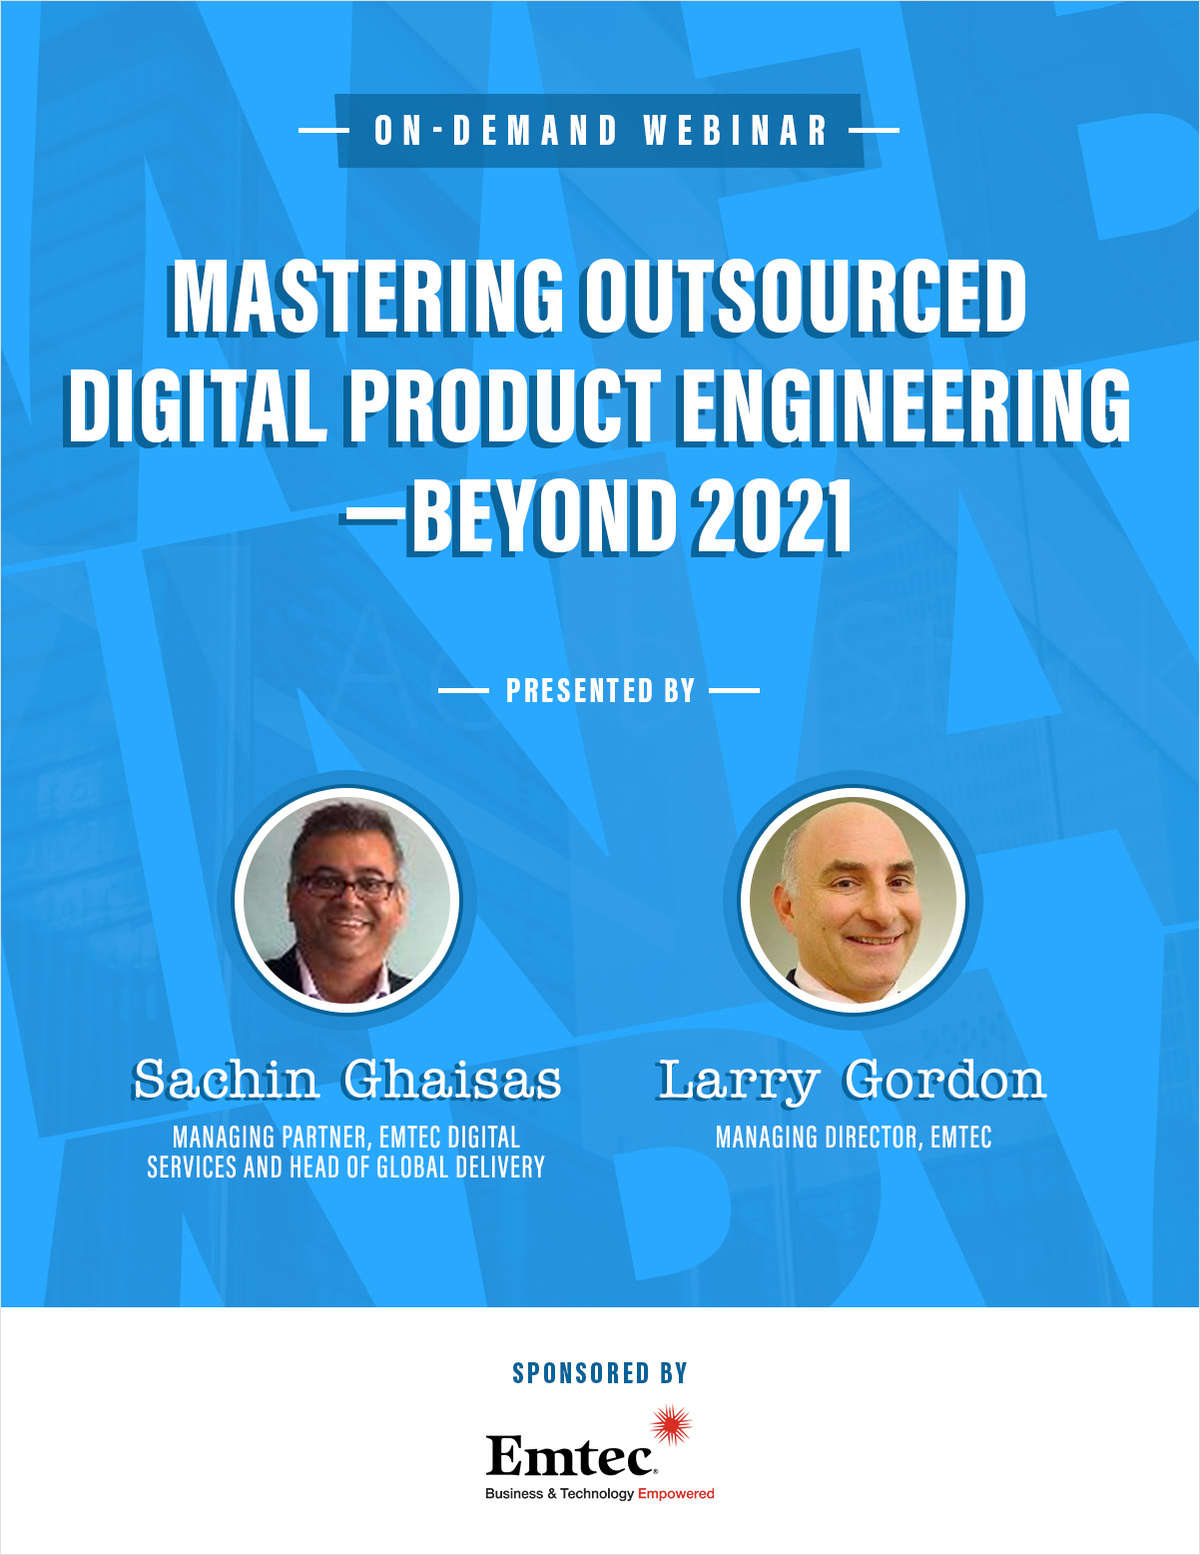 Mastering outsourced digital product engineering -- Beyond 2021